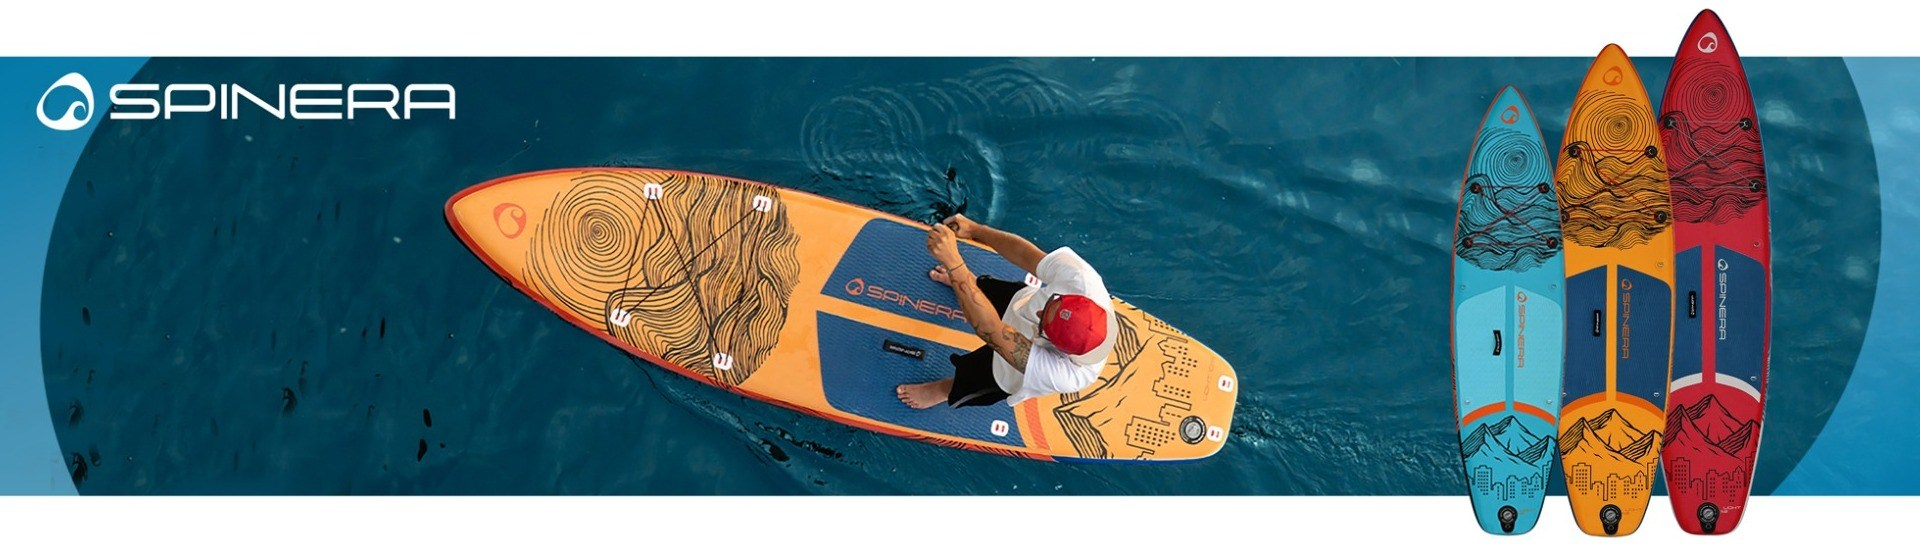 spinera-paddle-sup-supkayak-watersport